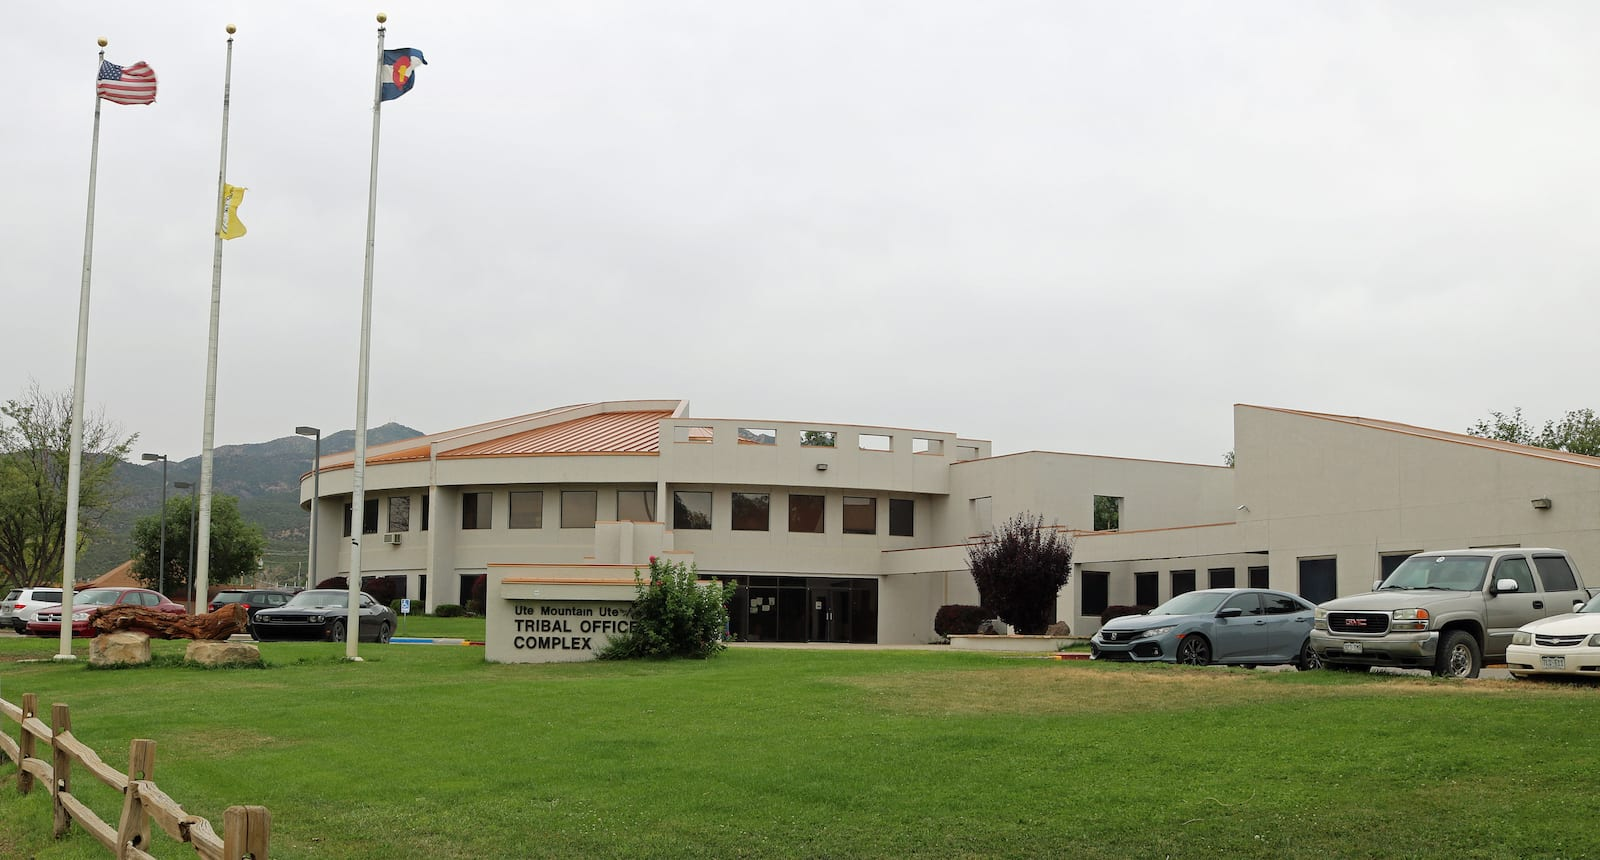 Ute Mountain Ute Tribal Office Complex